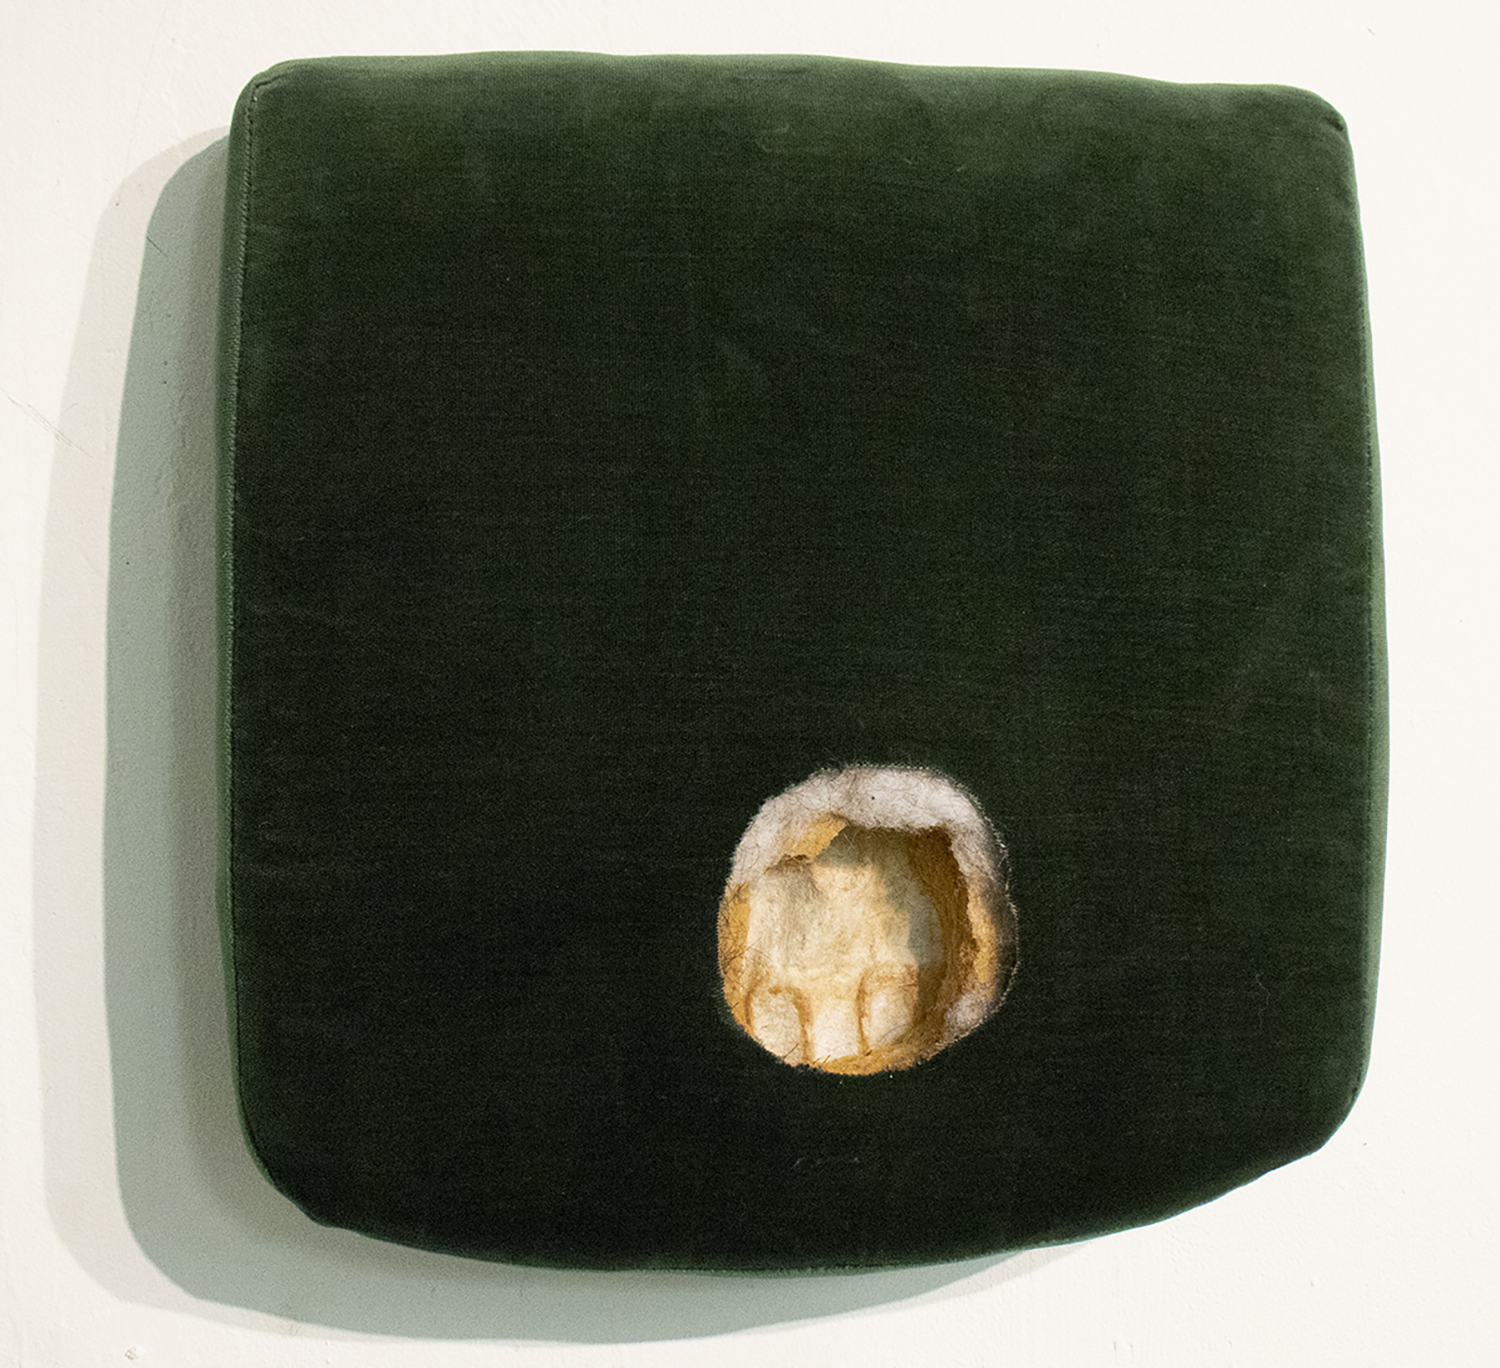 Untitled (seat)  Found object sculpture  17 x 18 x 5 in